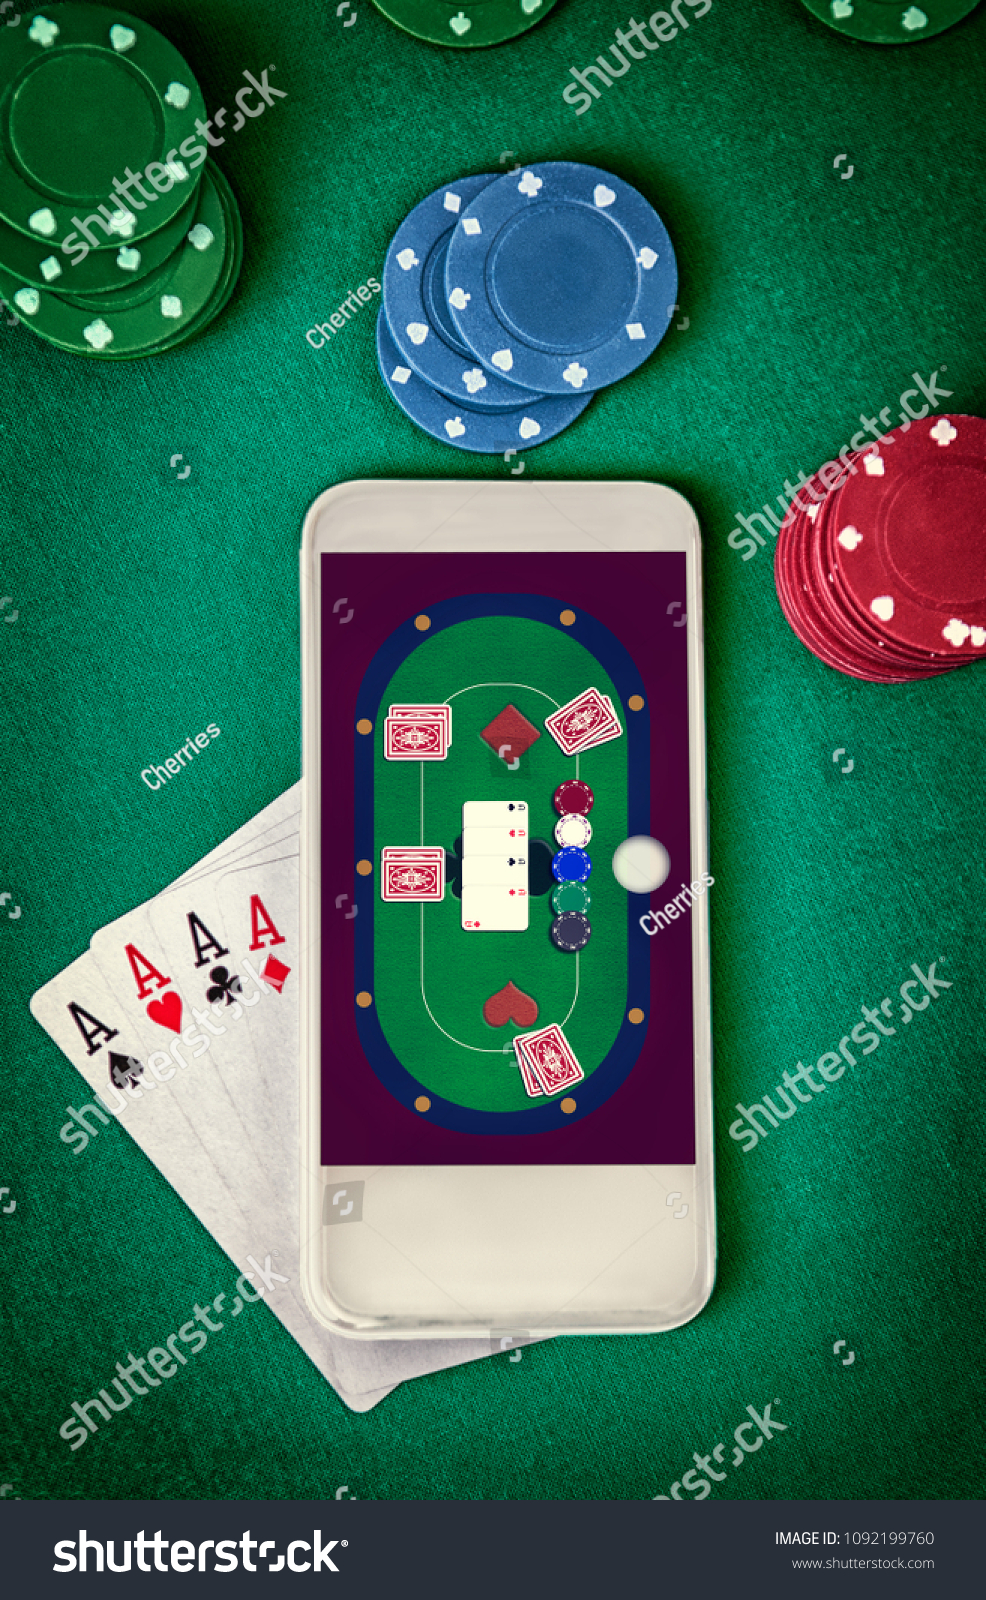 unrivaled online casino games experience